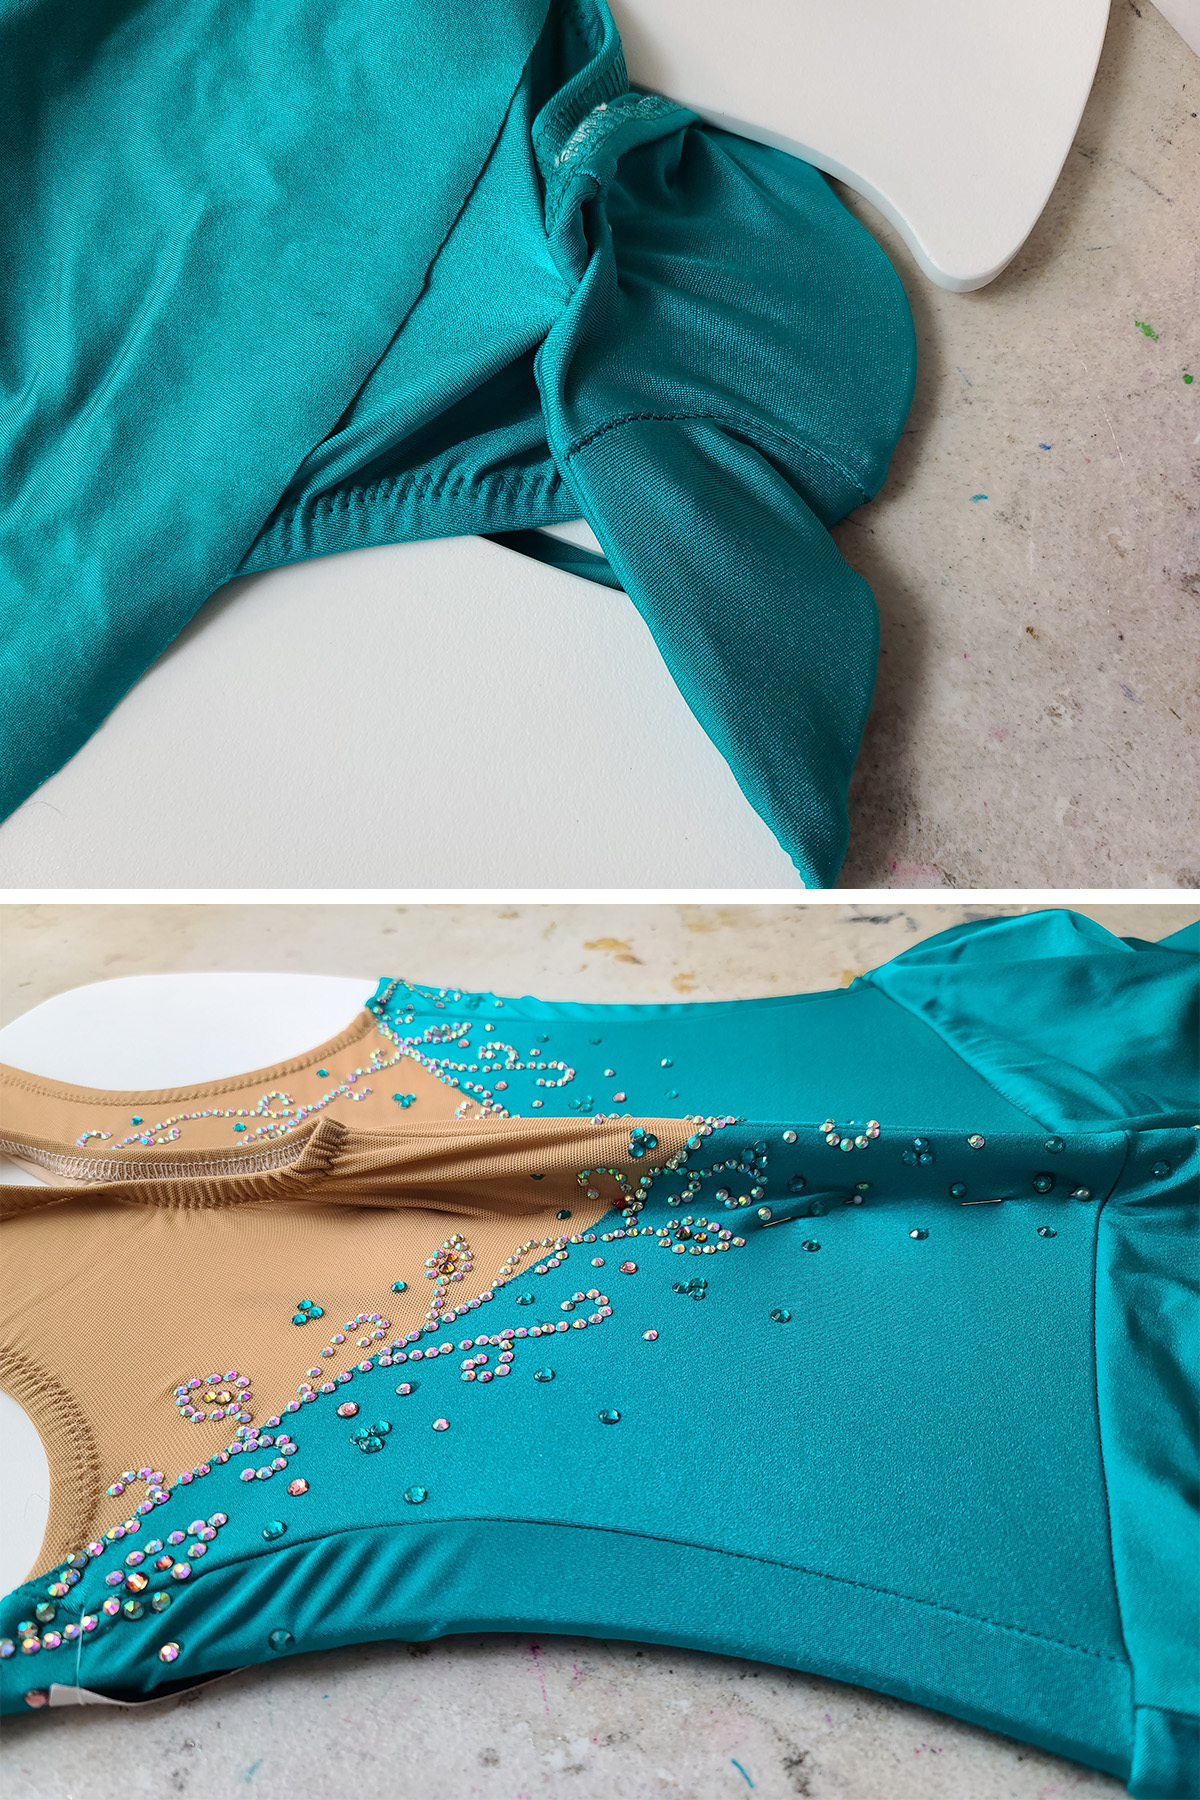 A light teal skating dress is on a stretcher board. These two images show it pinned back at both the crotch, and up the back of the dress.